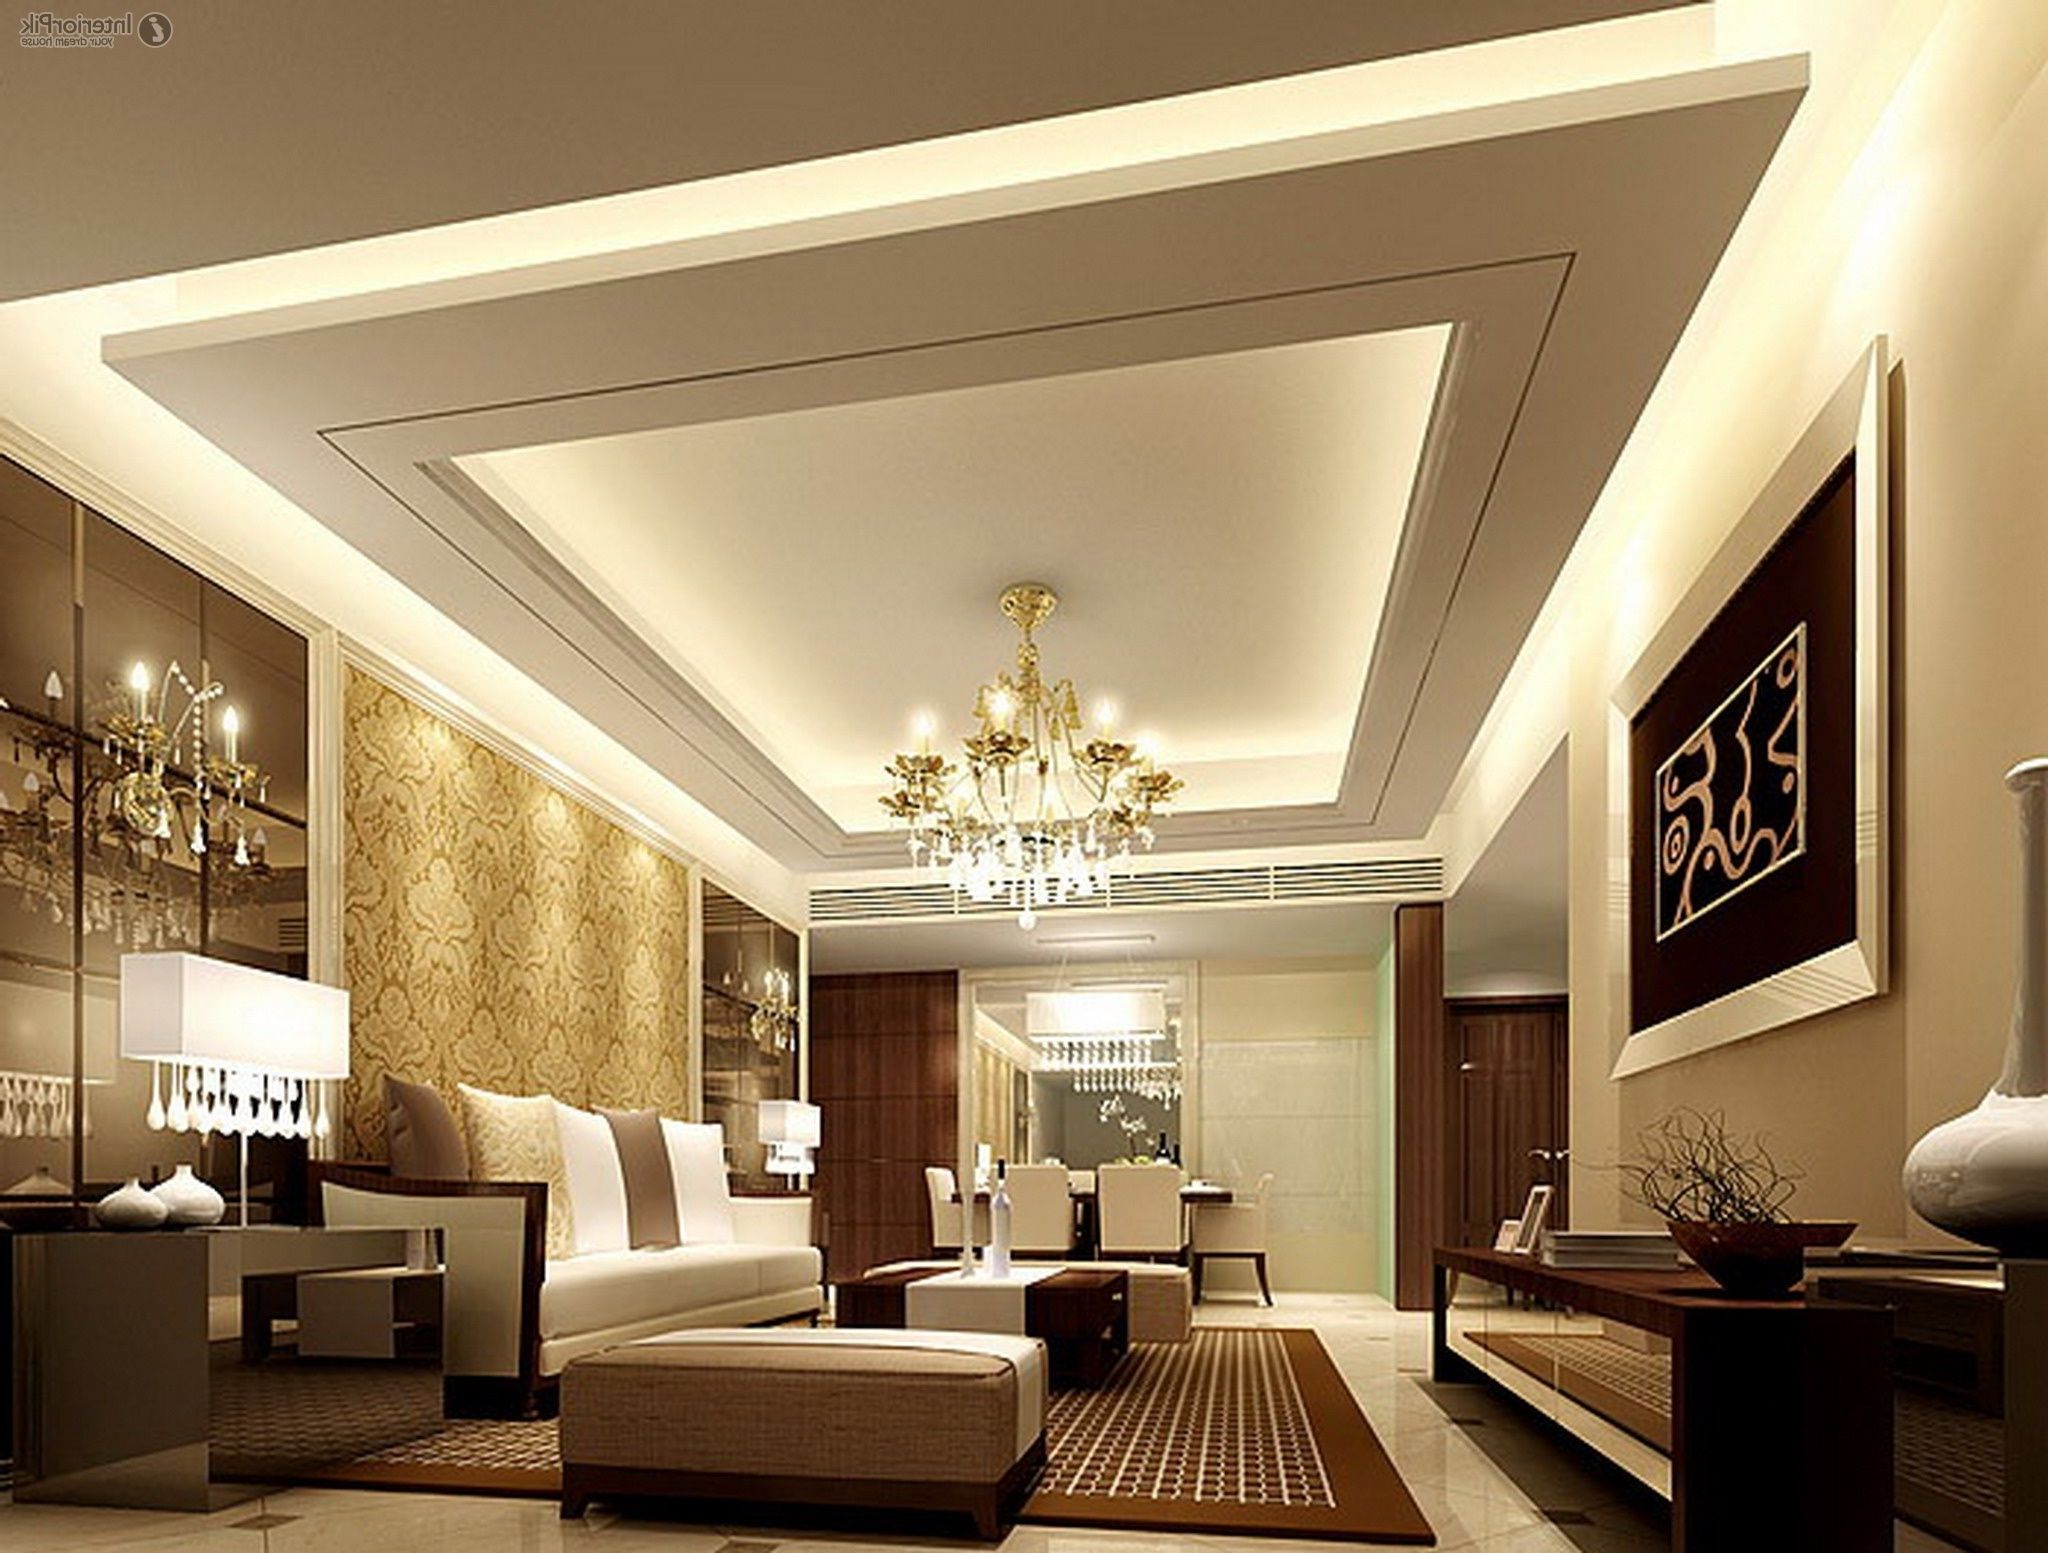 Gypsum Ceiling Design For Living Room Lighting Home Decorate Best Awesome Best Living Room Design 2018